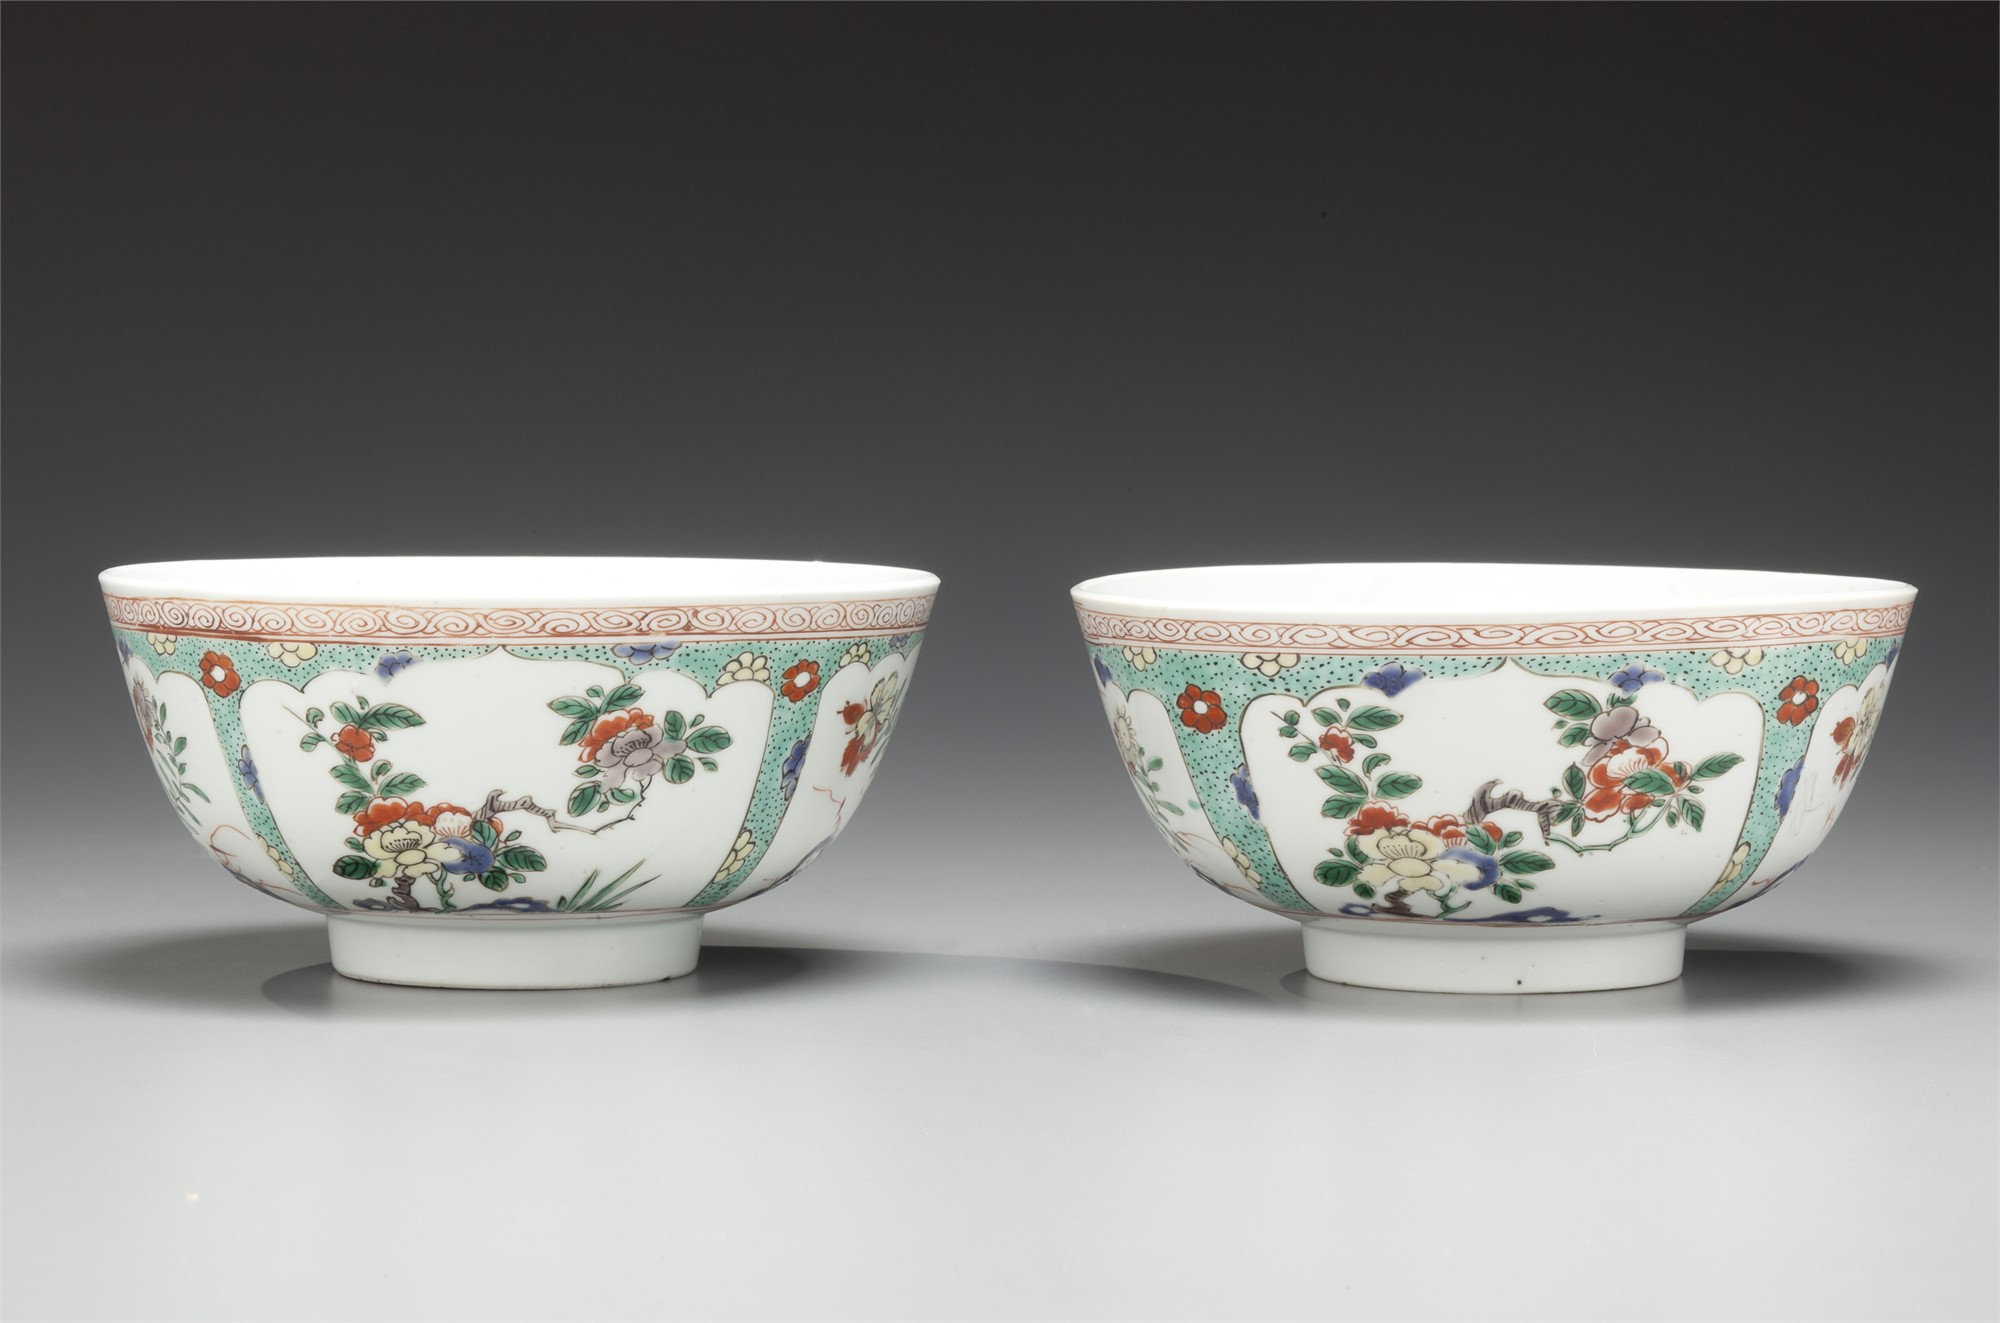 PAIR OF FAMILLE VERTE ENAMELED PORCELAIN BOWLS WITH FLORAL RESERVES